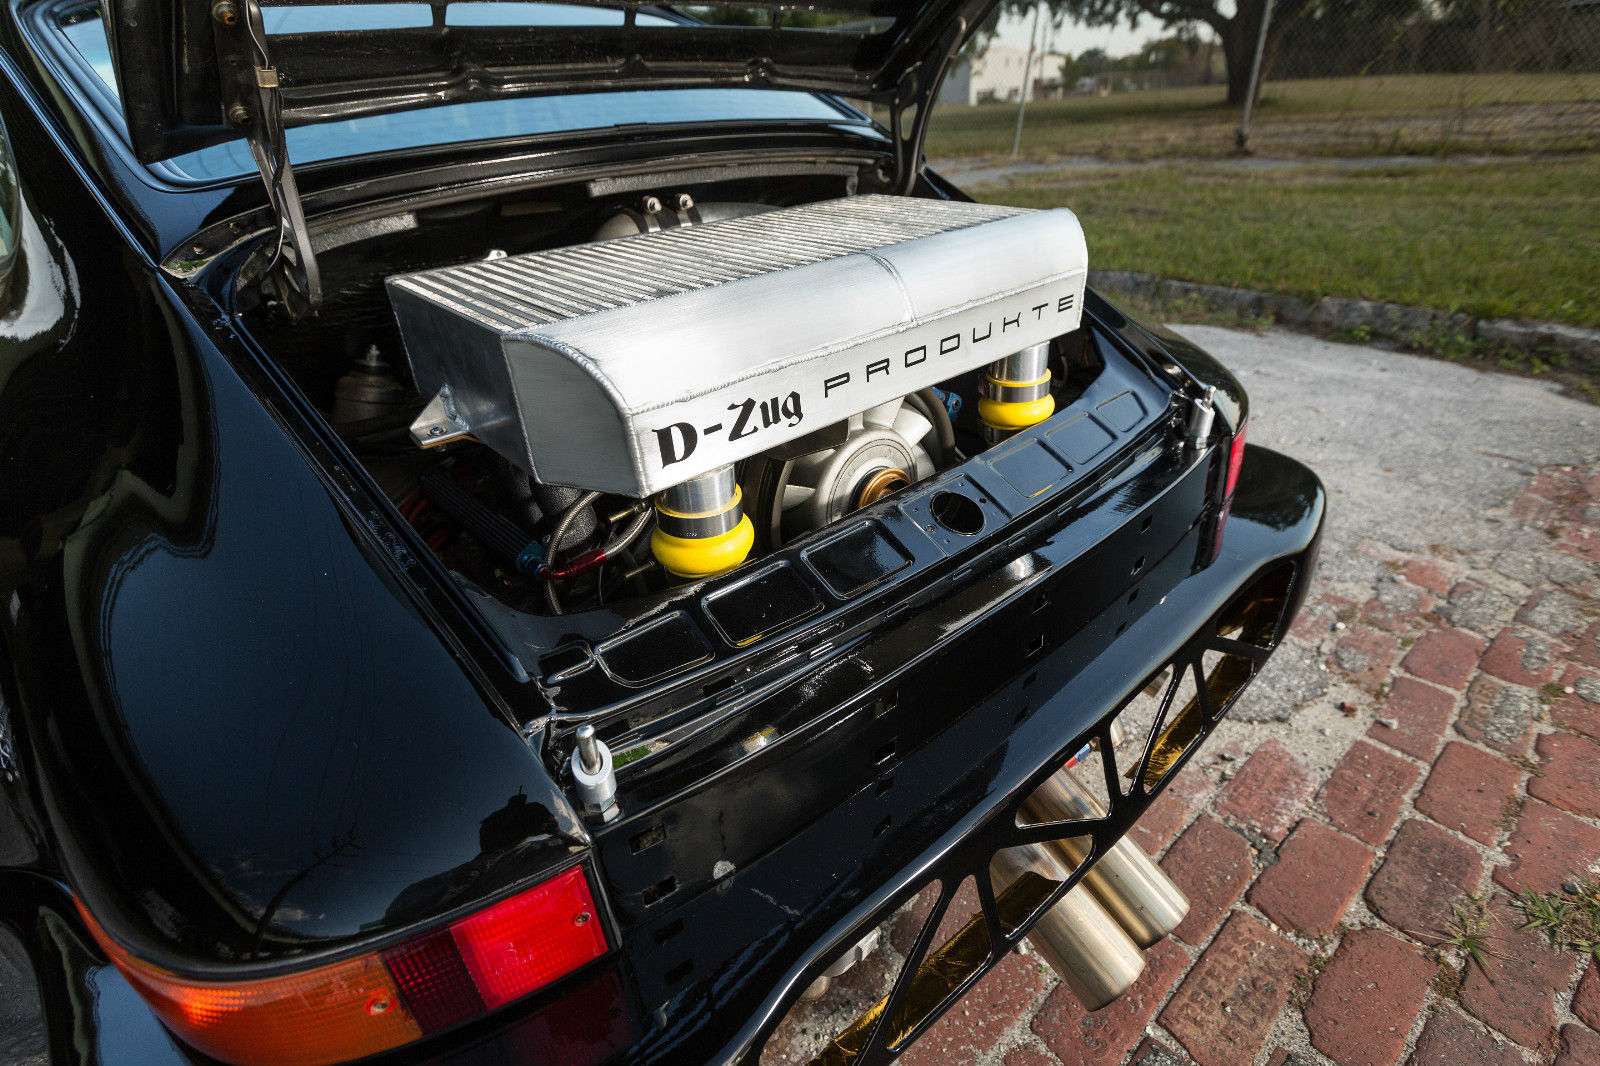 Porsche 930 Turbo D-Zug